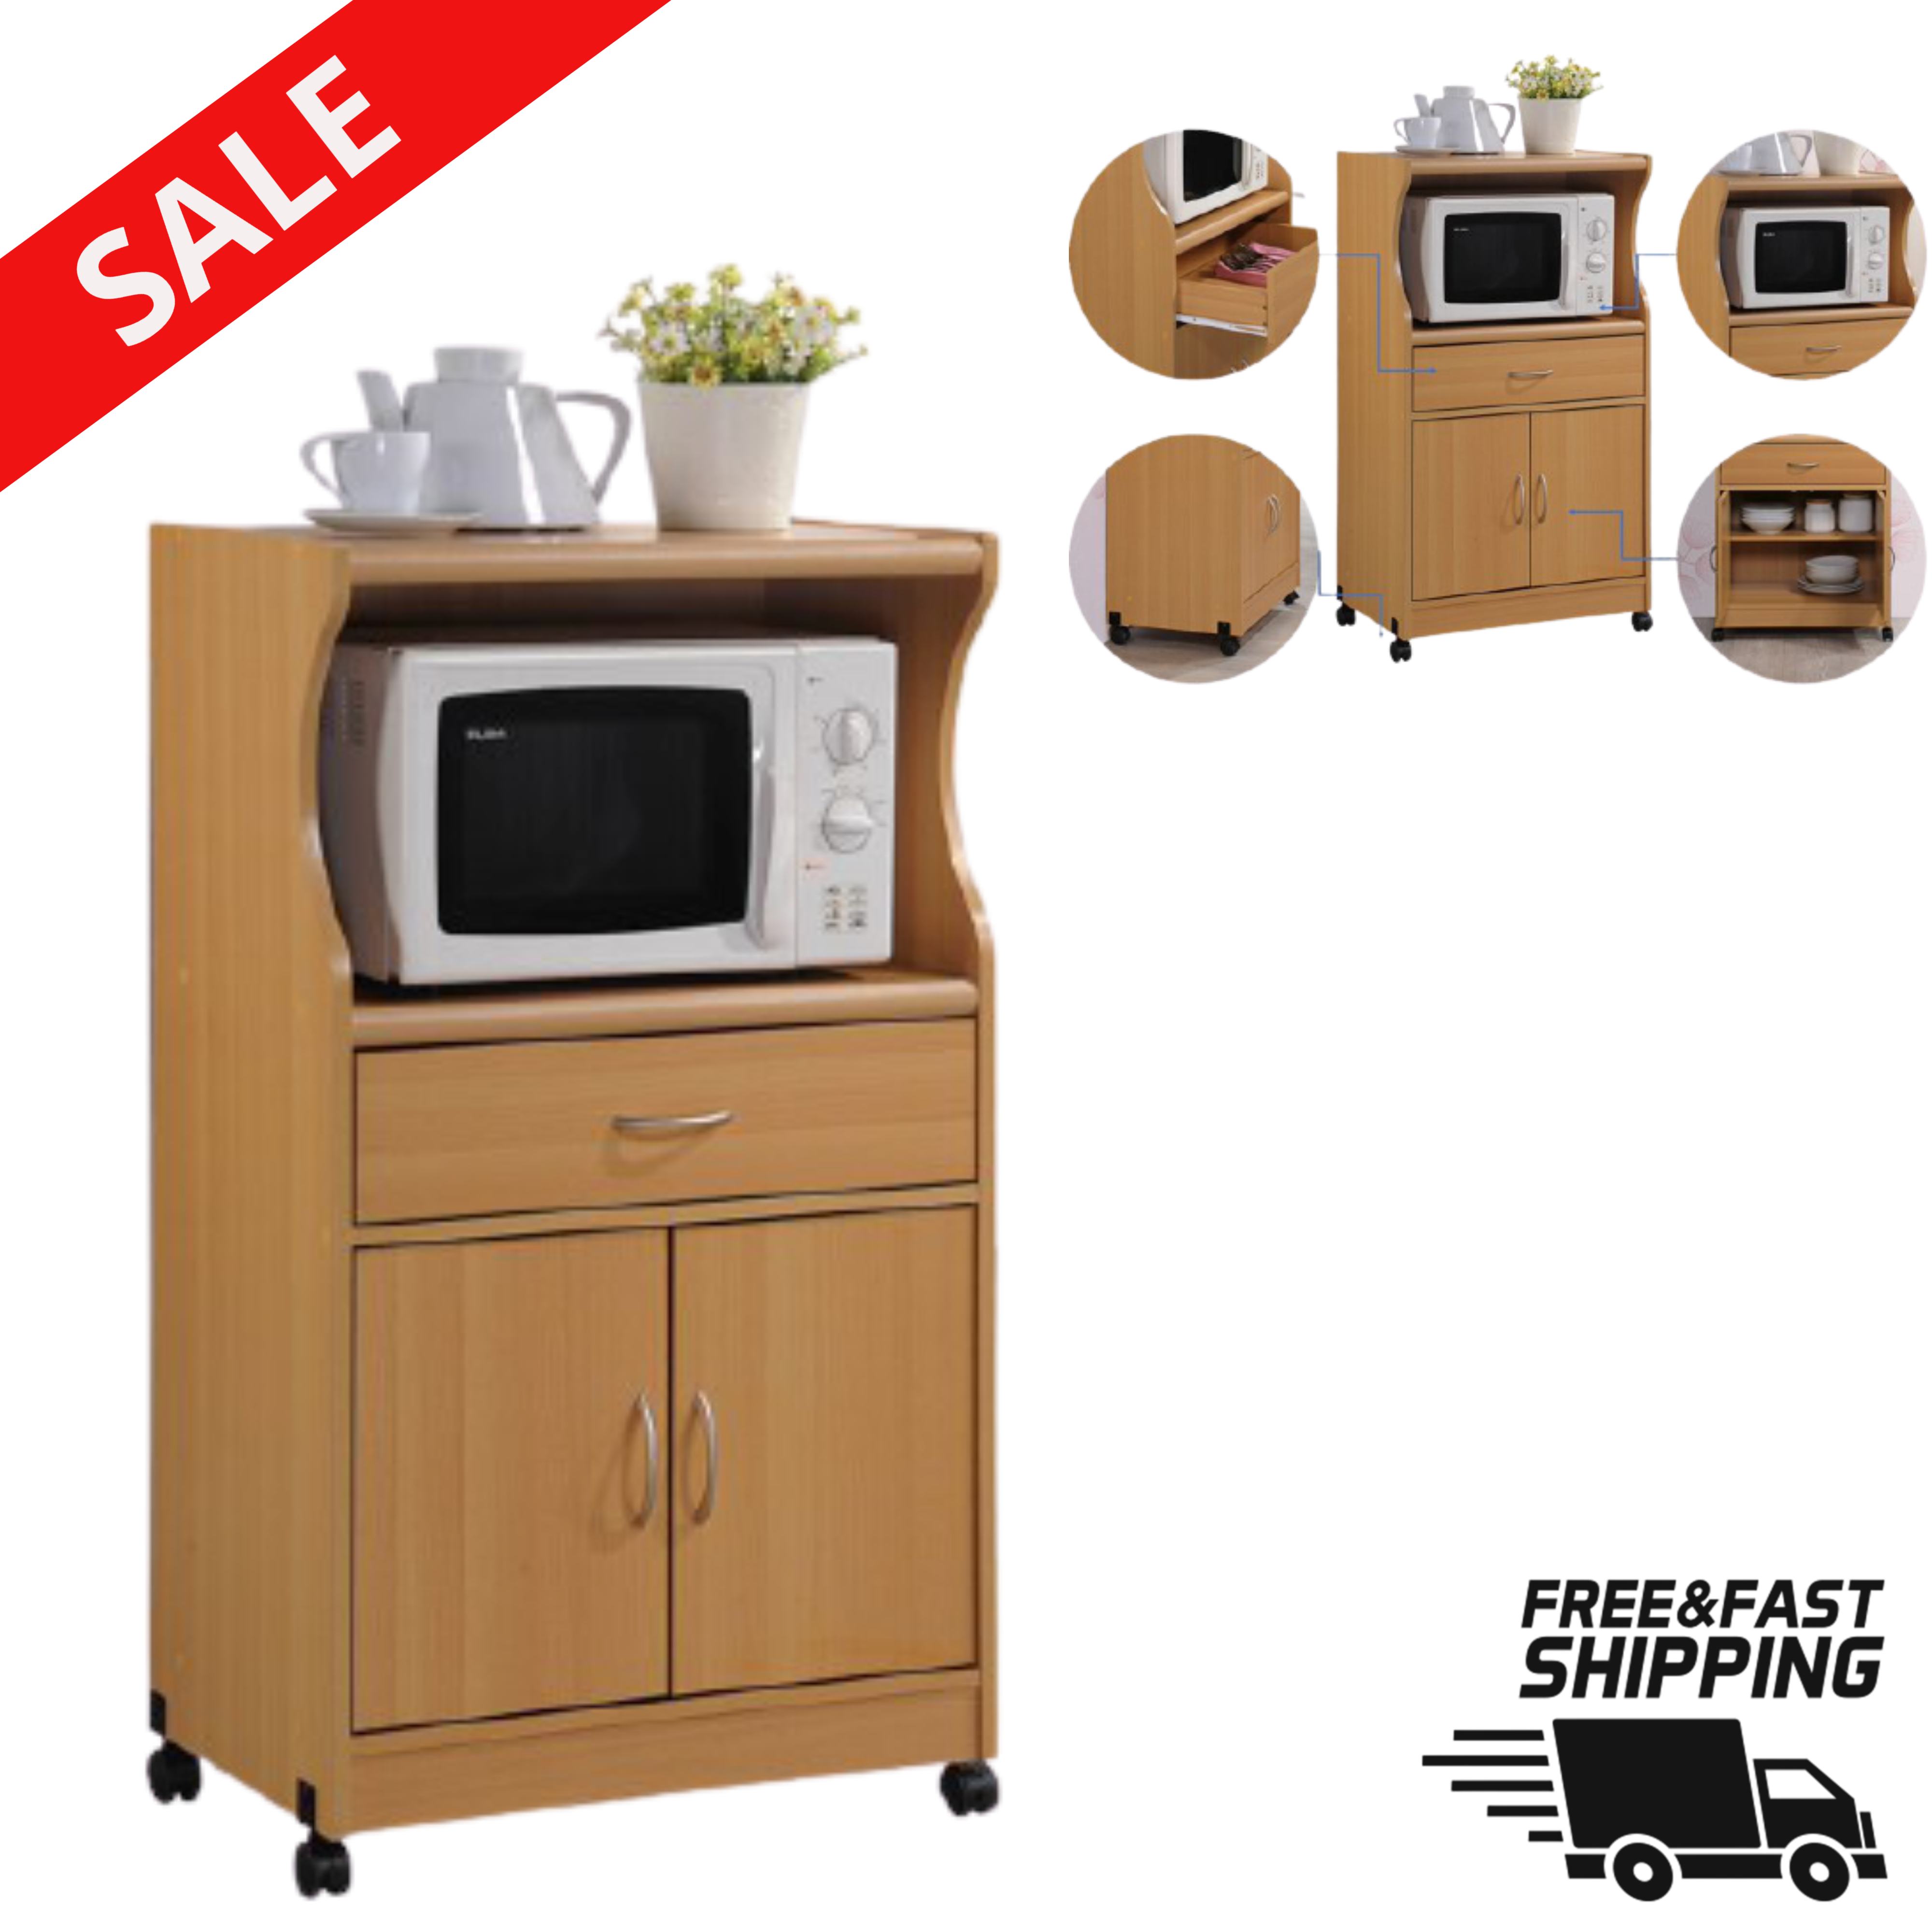 Microwave Stand Cart Rolling Kitchen